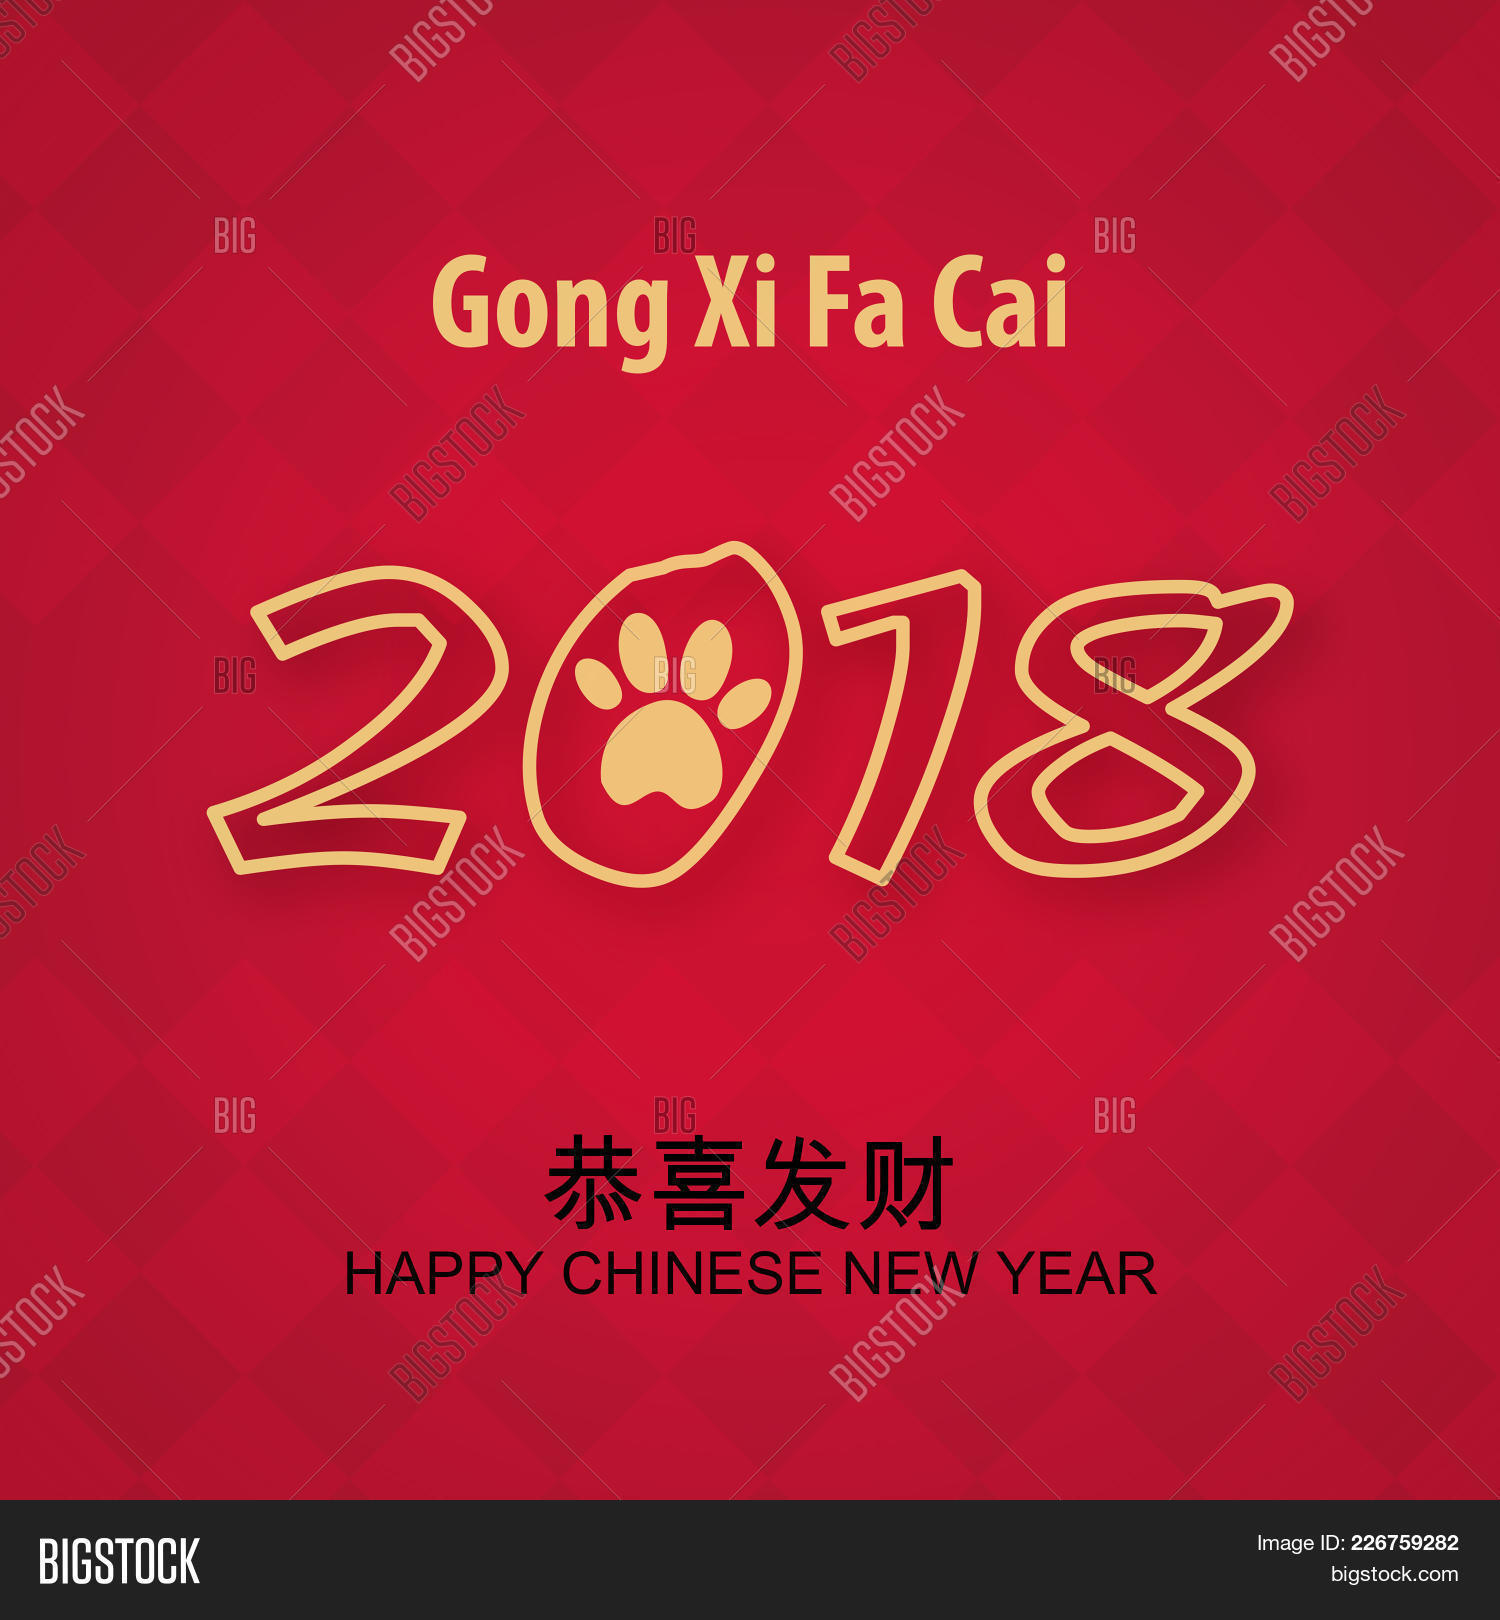 chinese new year greeting card design chinese translation gong xi fa cai